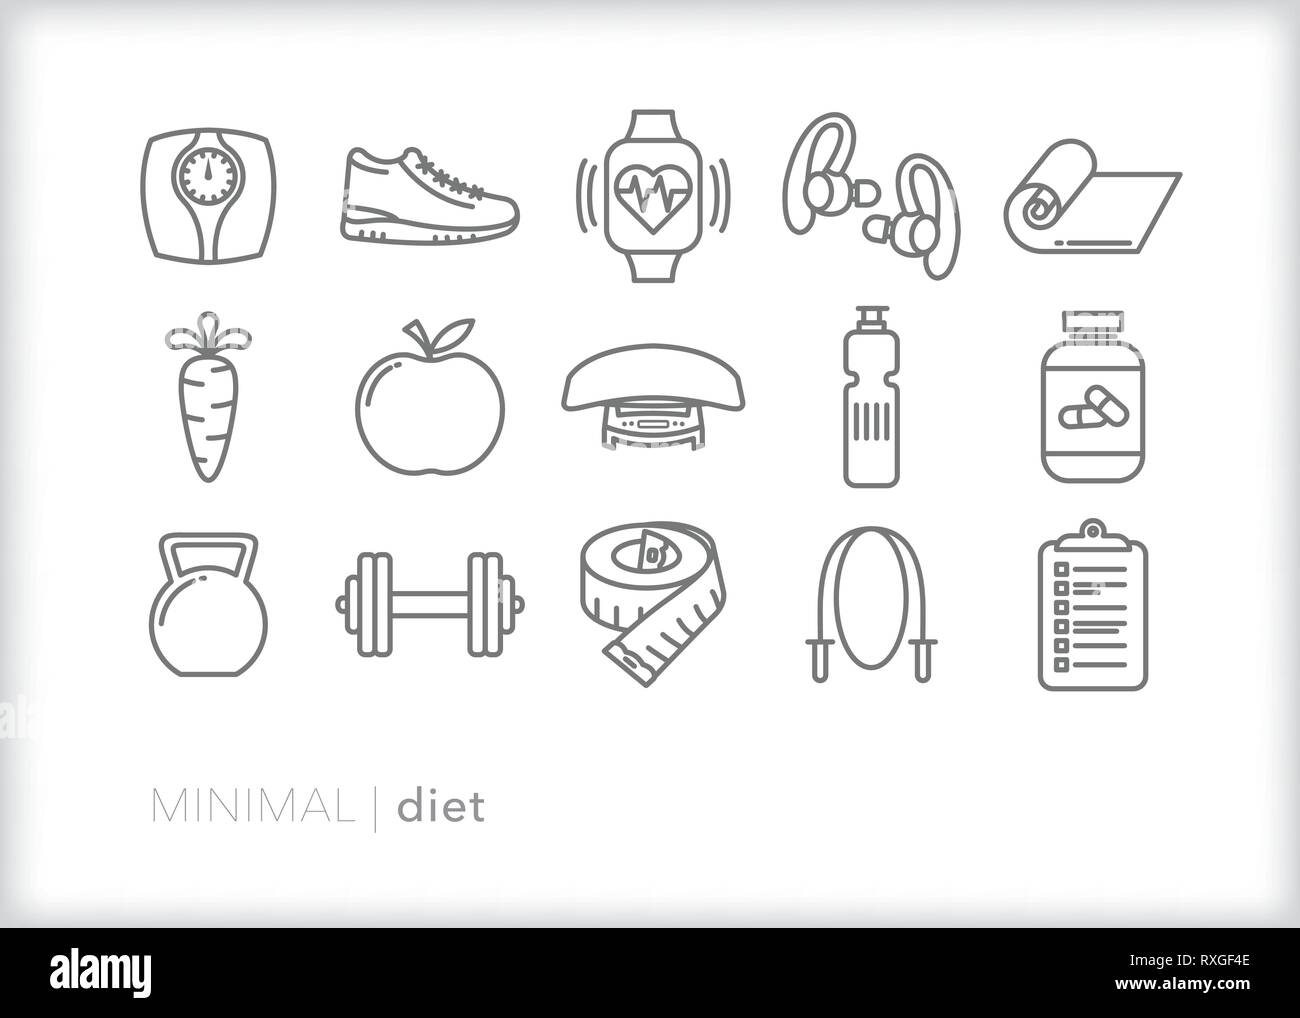 Set of 15 diet line icons for eating healthy, working out, stretching, being active, general fitness and losing weight - Stock Vector